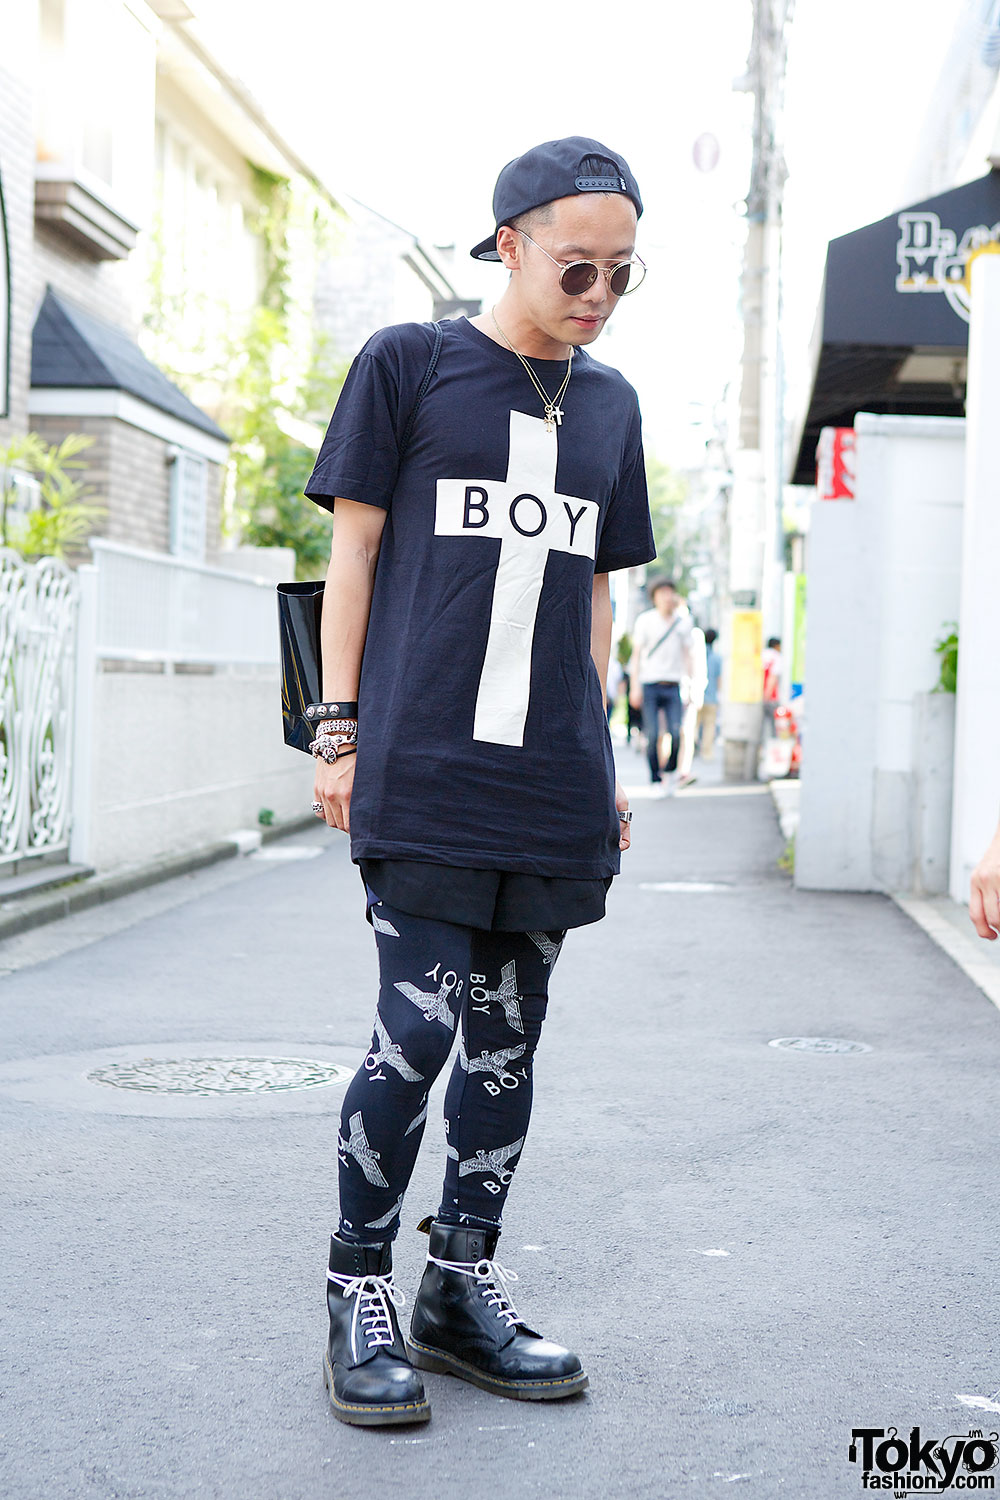 Harajuku Guy In Boy London Dr Martens amp Chrome Hearts